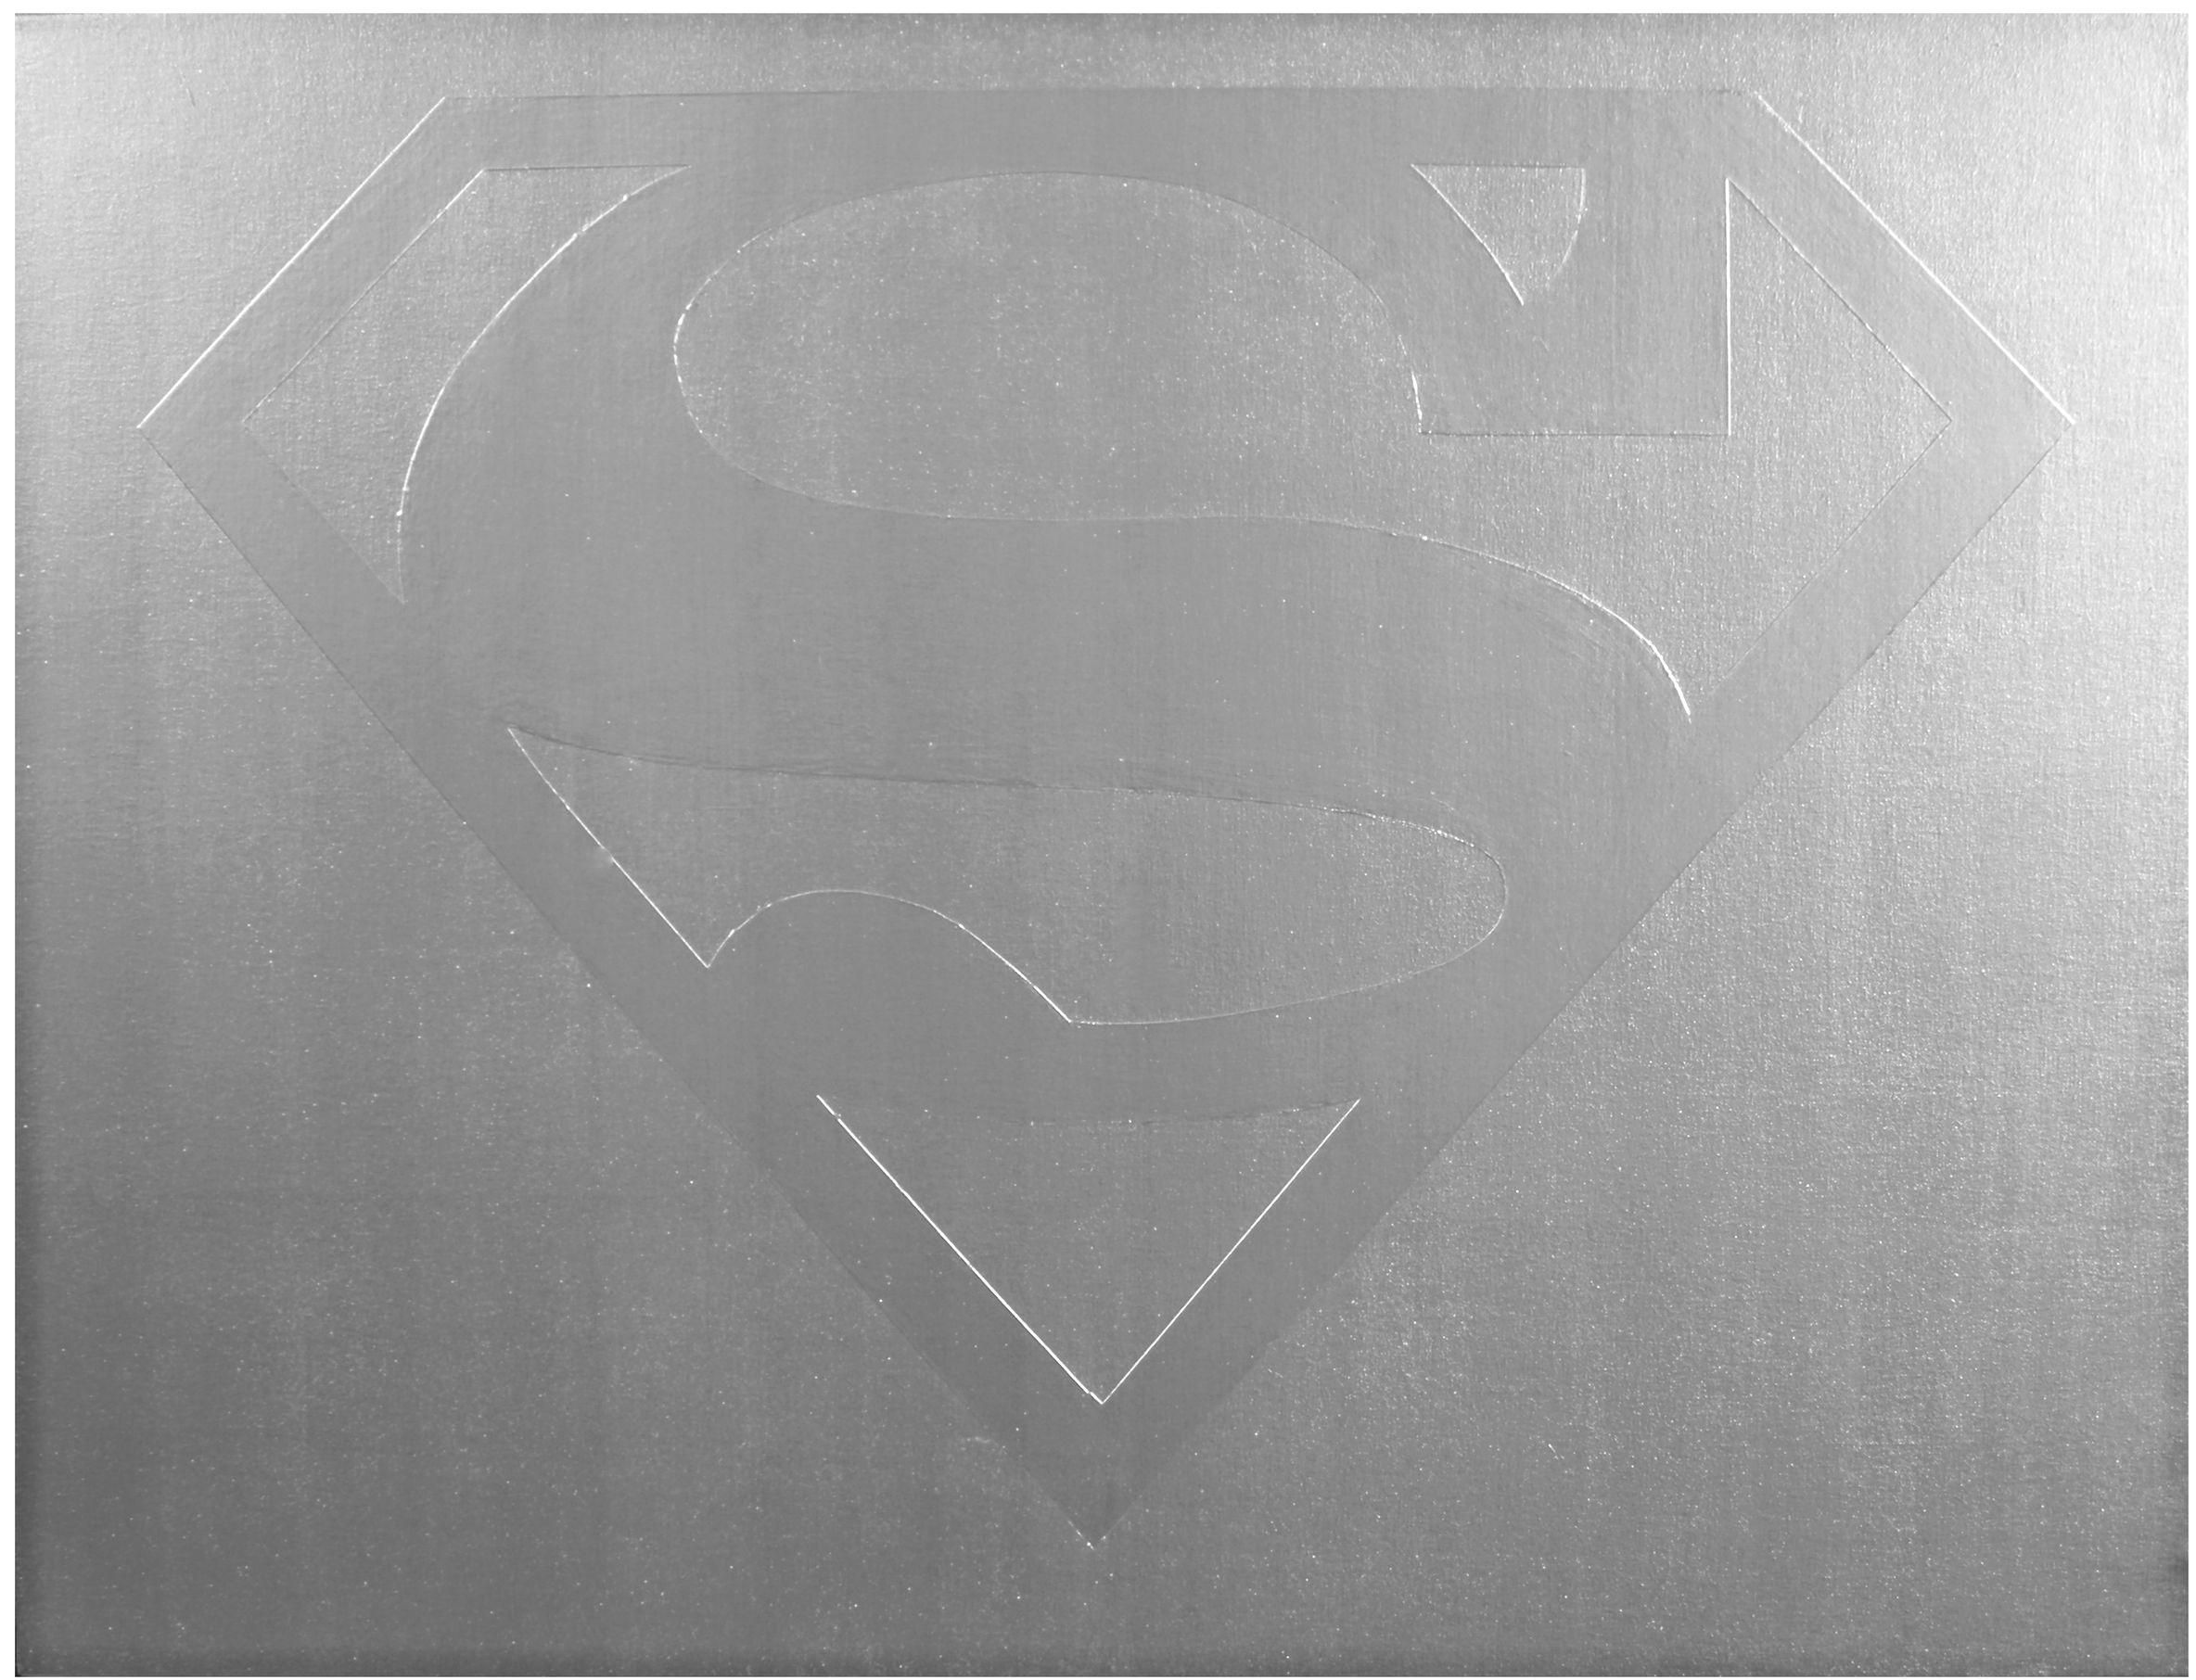 Man Of Steel ( There Goes My Hero )  Industrial Paint on Canvas - 32 x 42in - 2011